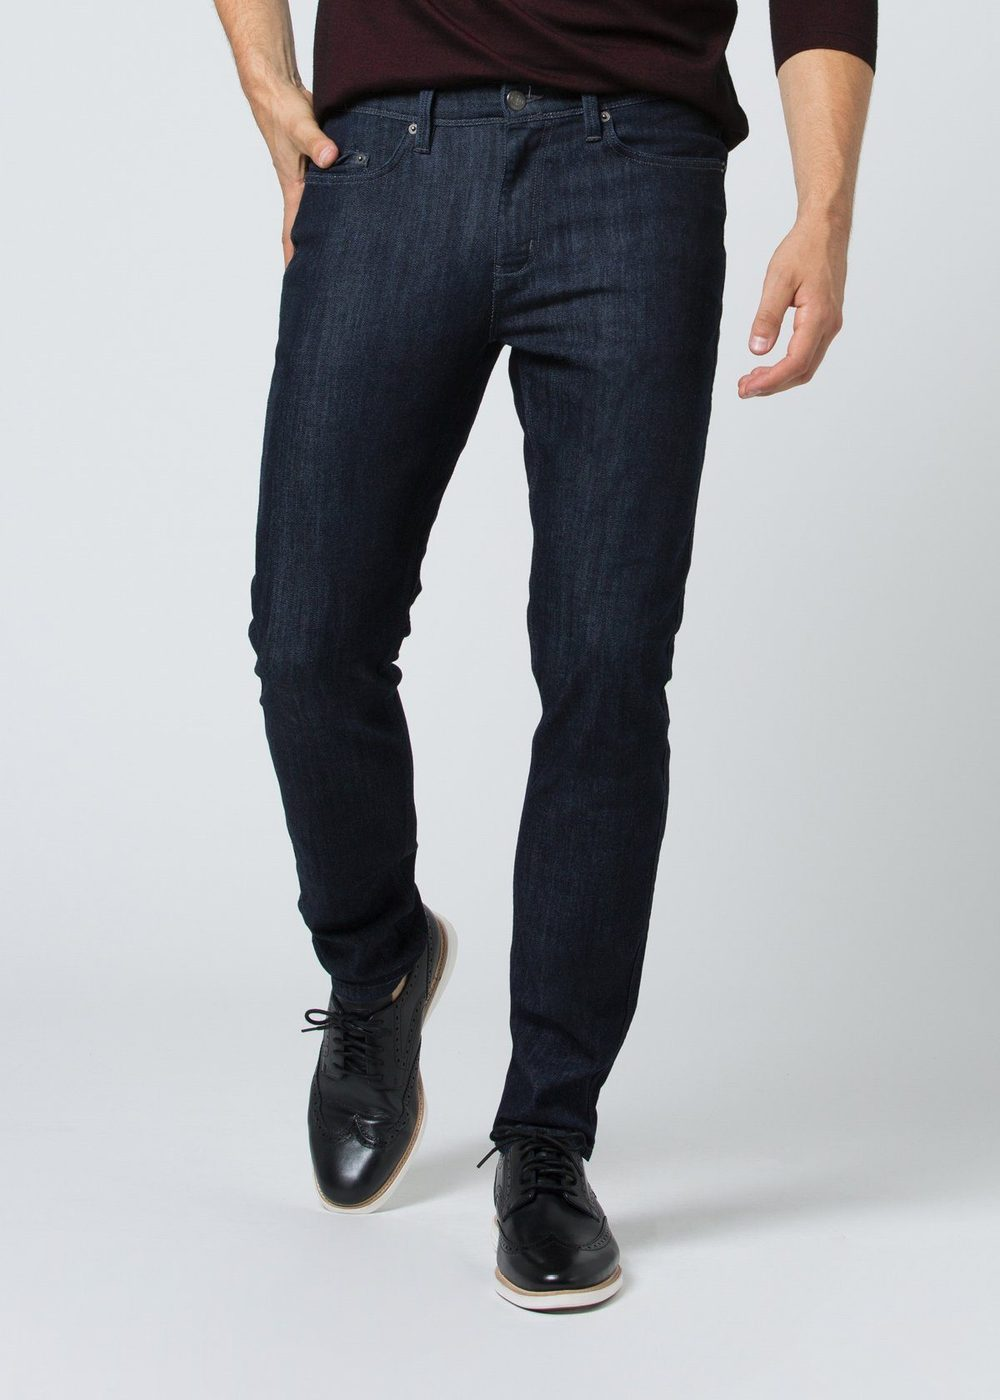 Duer Mens Slim Fit Performance Denim - Rinse